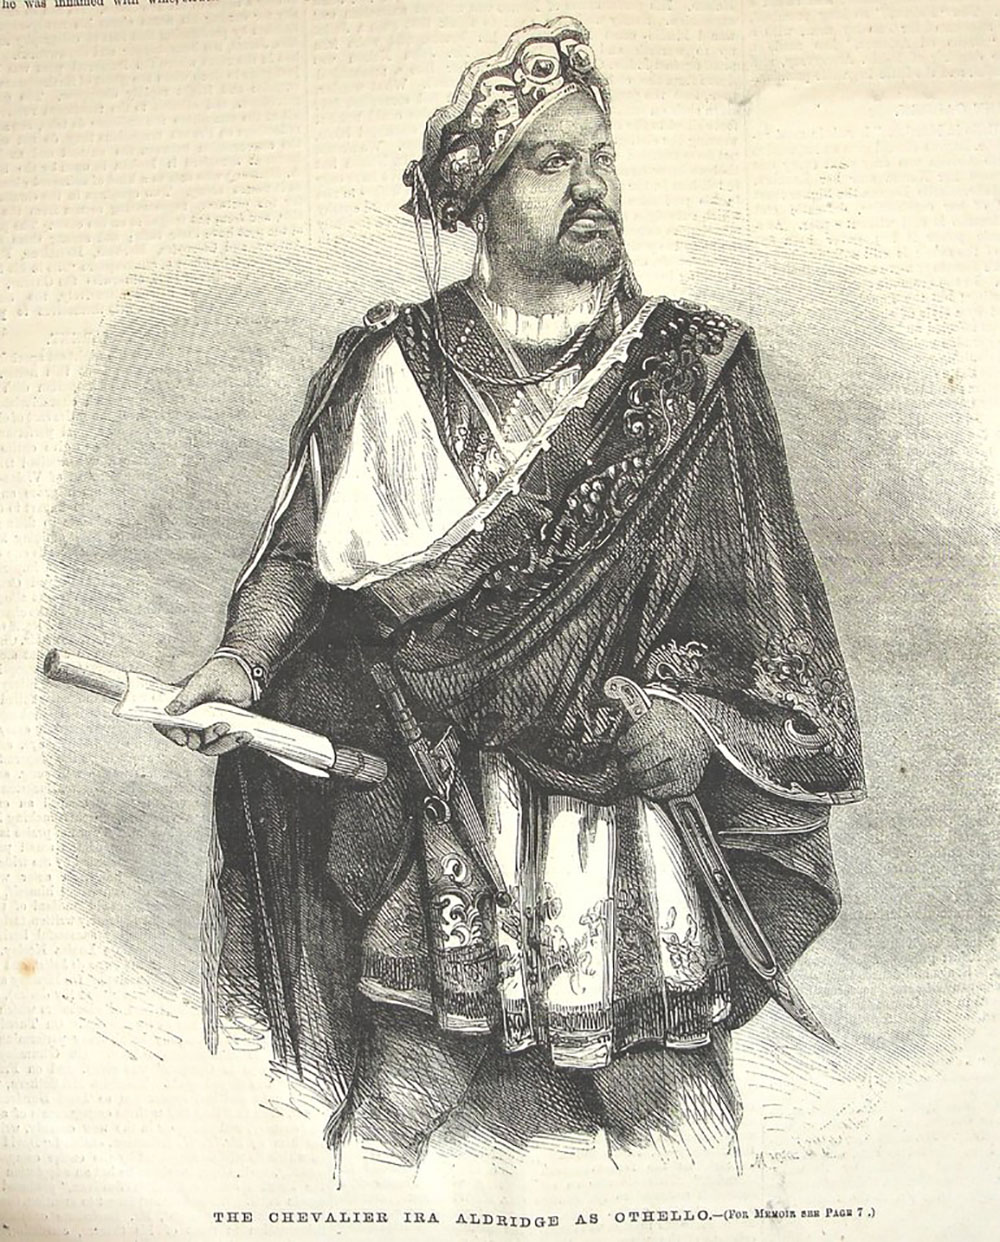 An illustration of an actor dressed as Othello